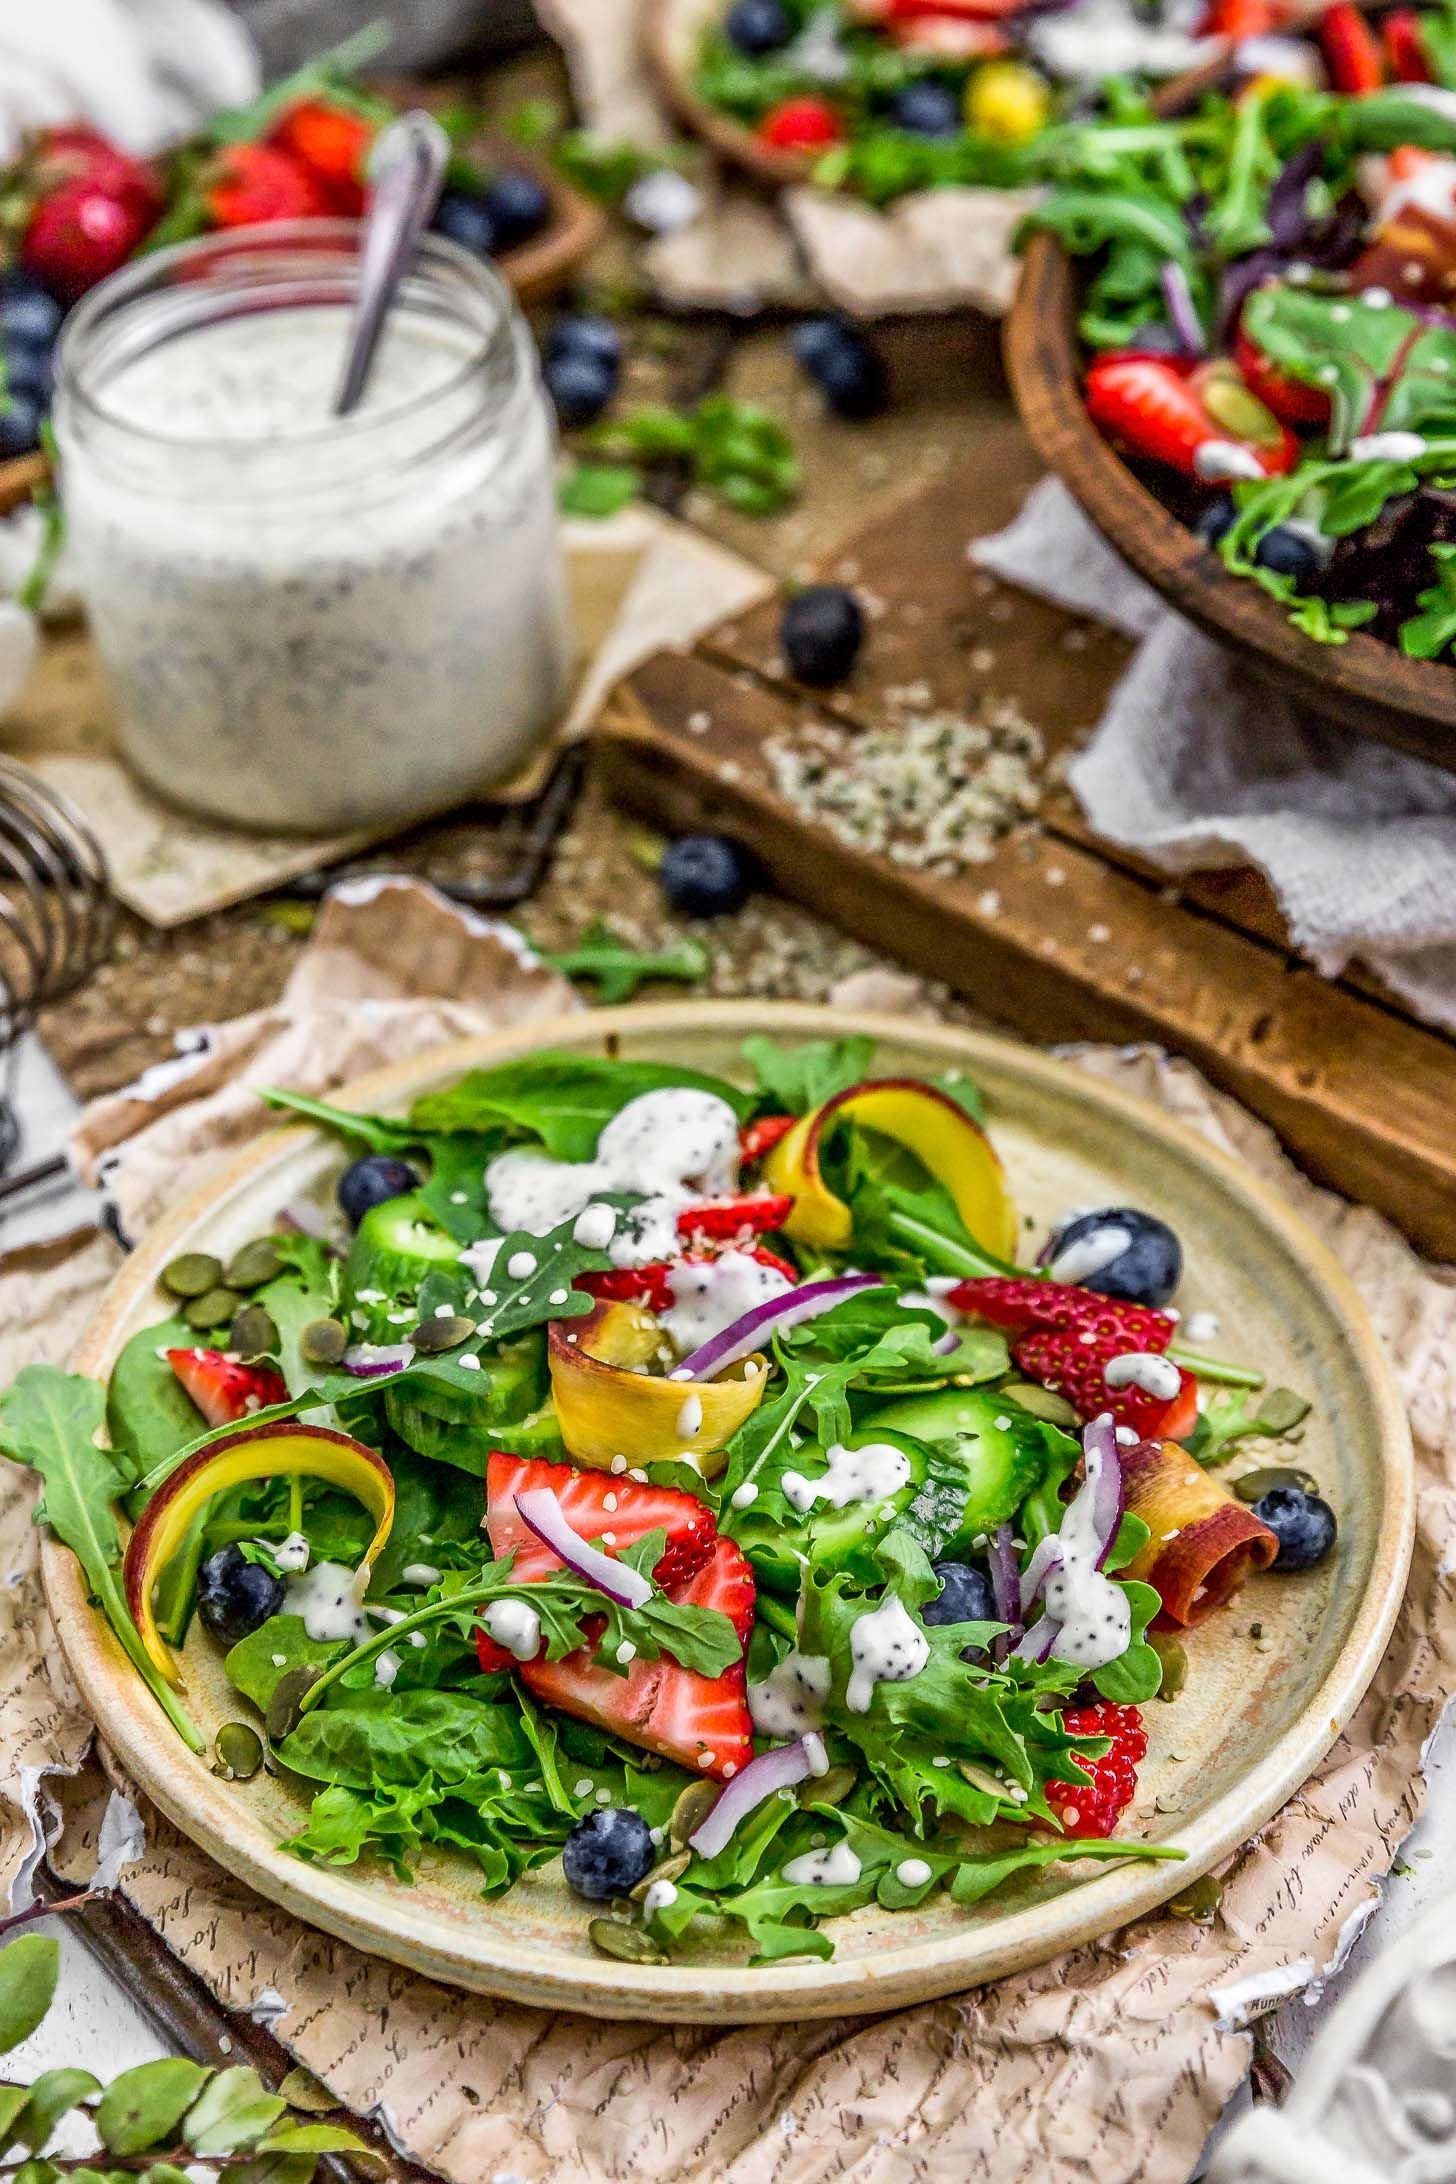 Vegan Lemon Poppy Seed Dressing Recipe Clean eating